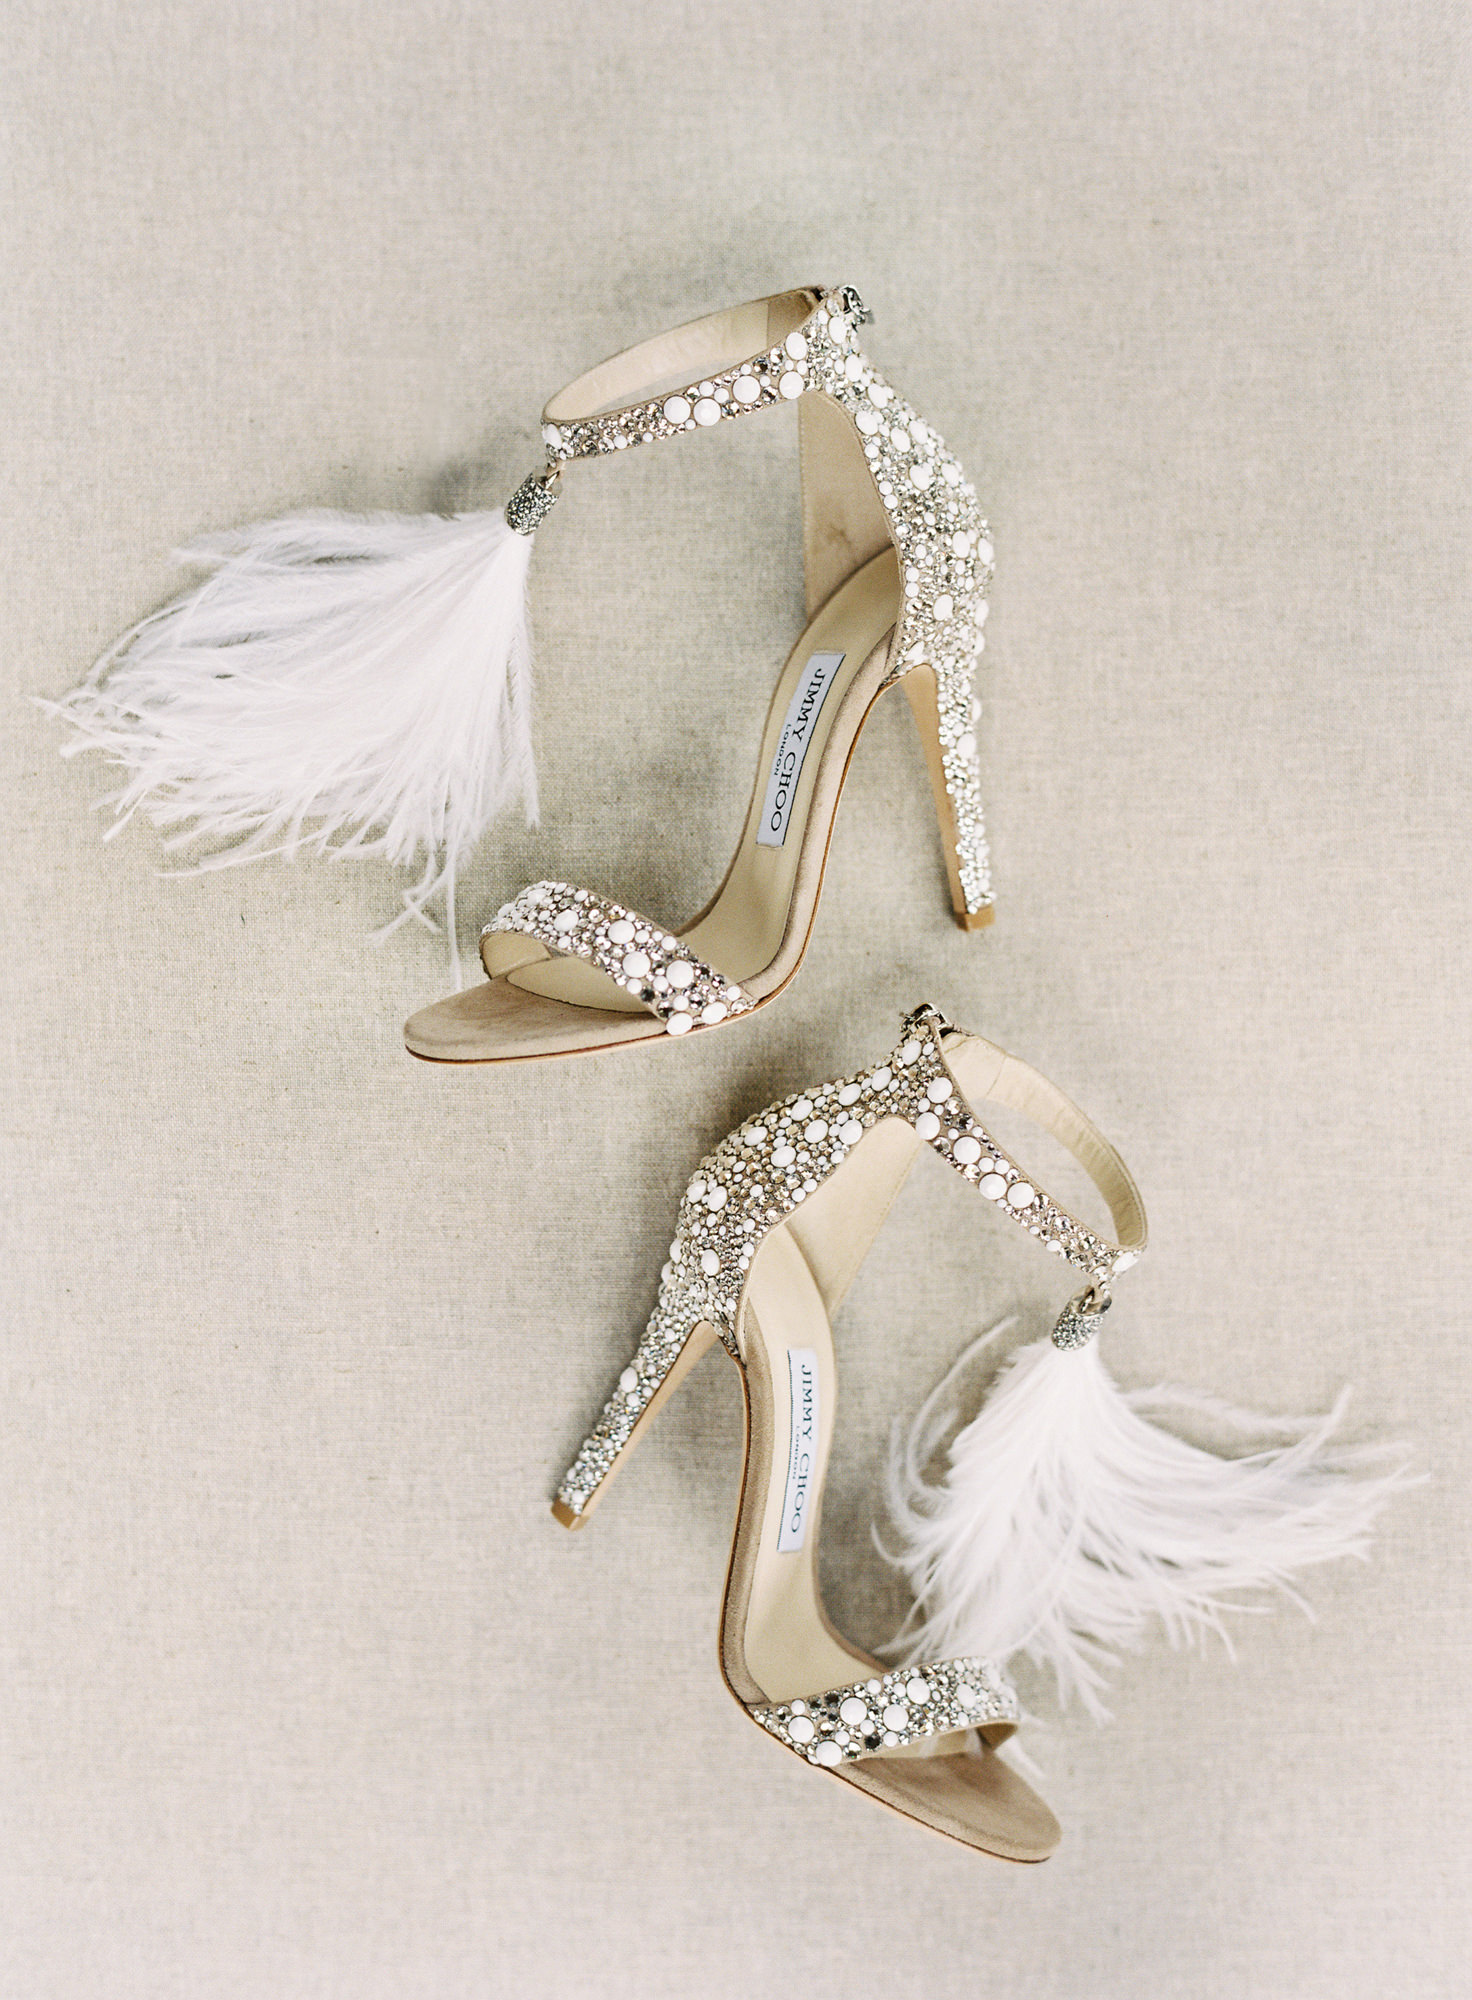 Jimmy Choo crystal feathered shoes Jen Huang Los Angeles wedding photographer